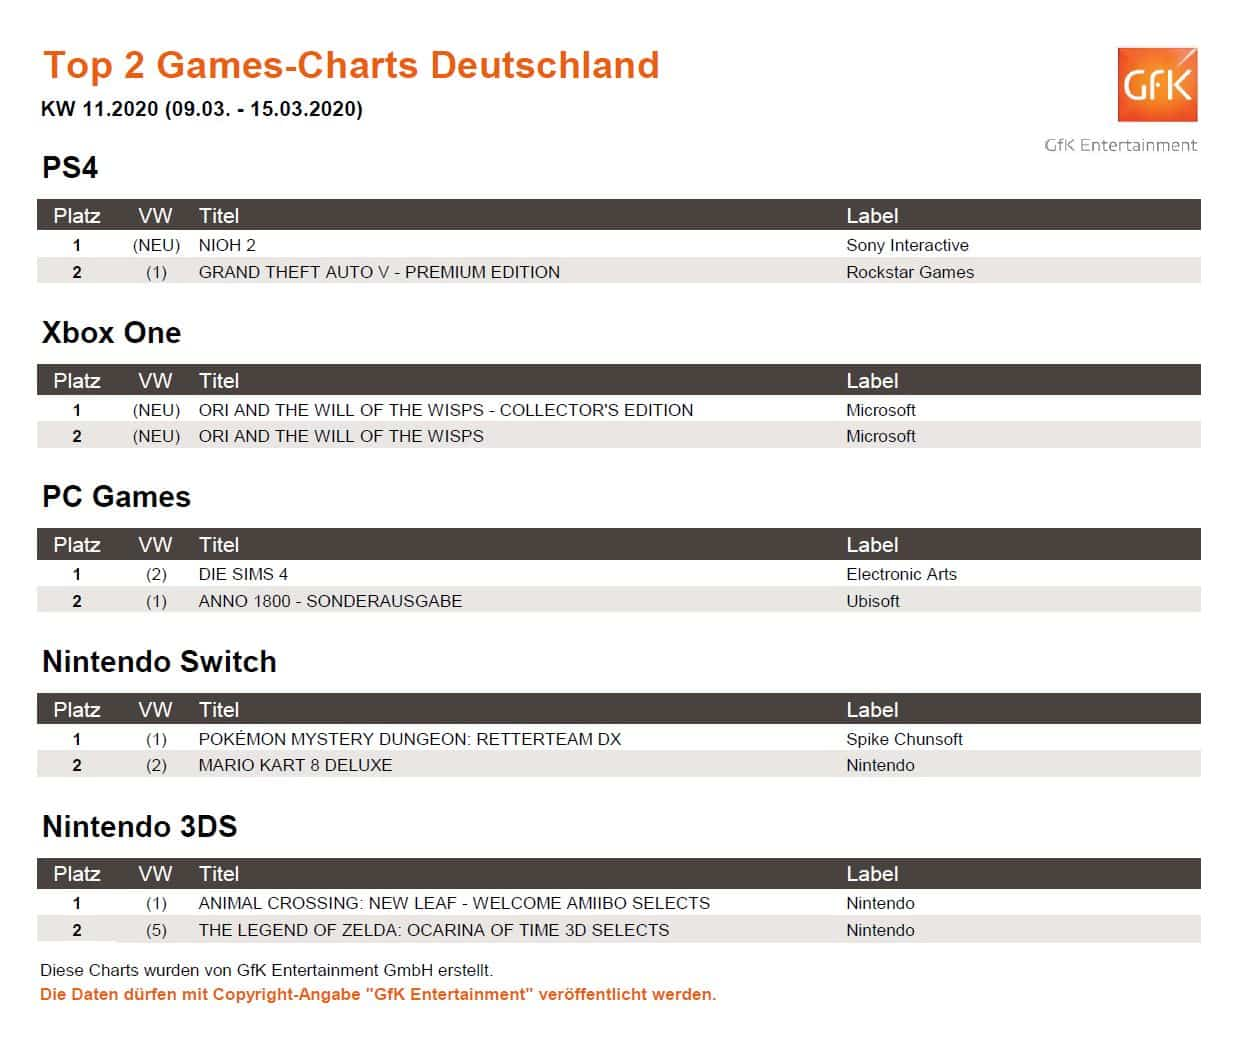 top 2 game charts 9. 15.3.2020